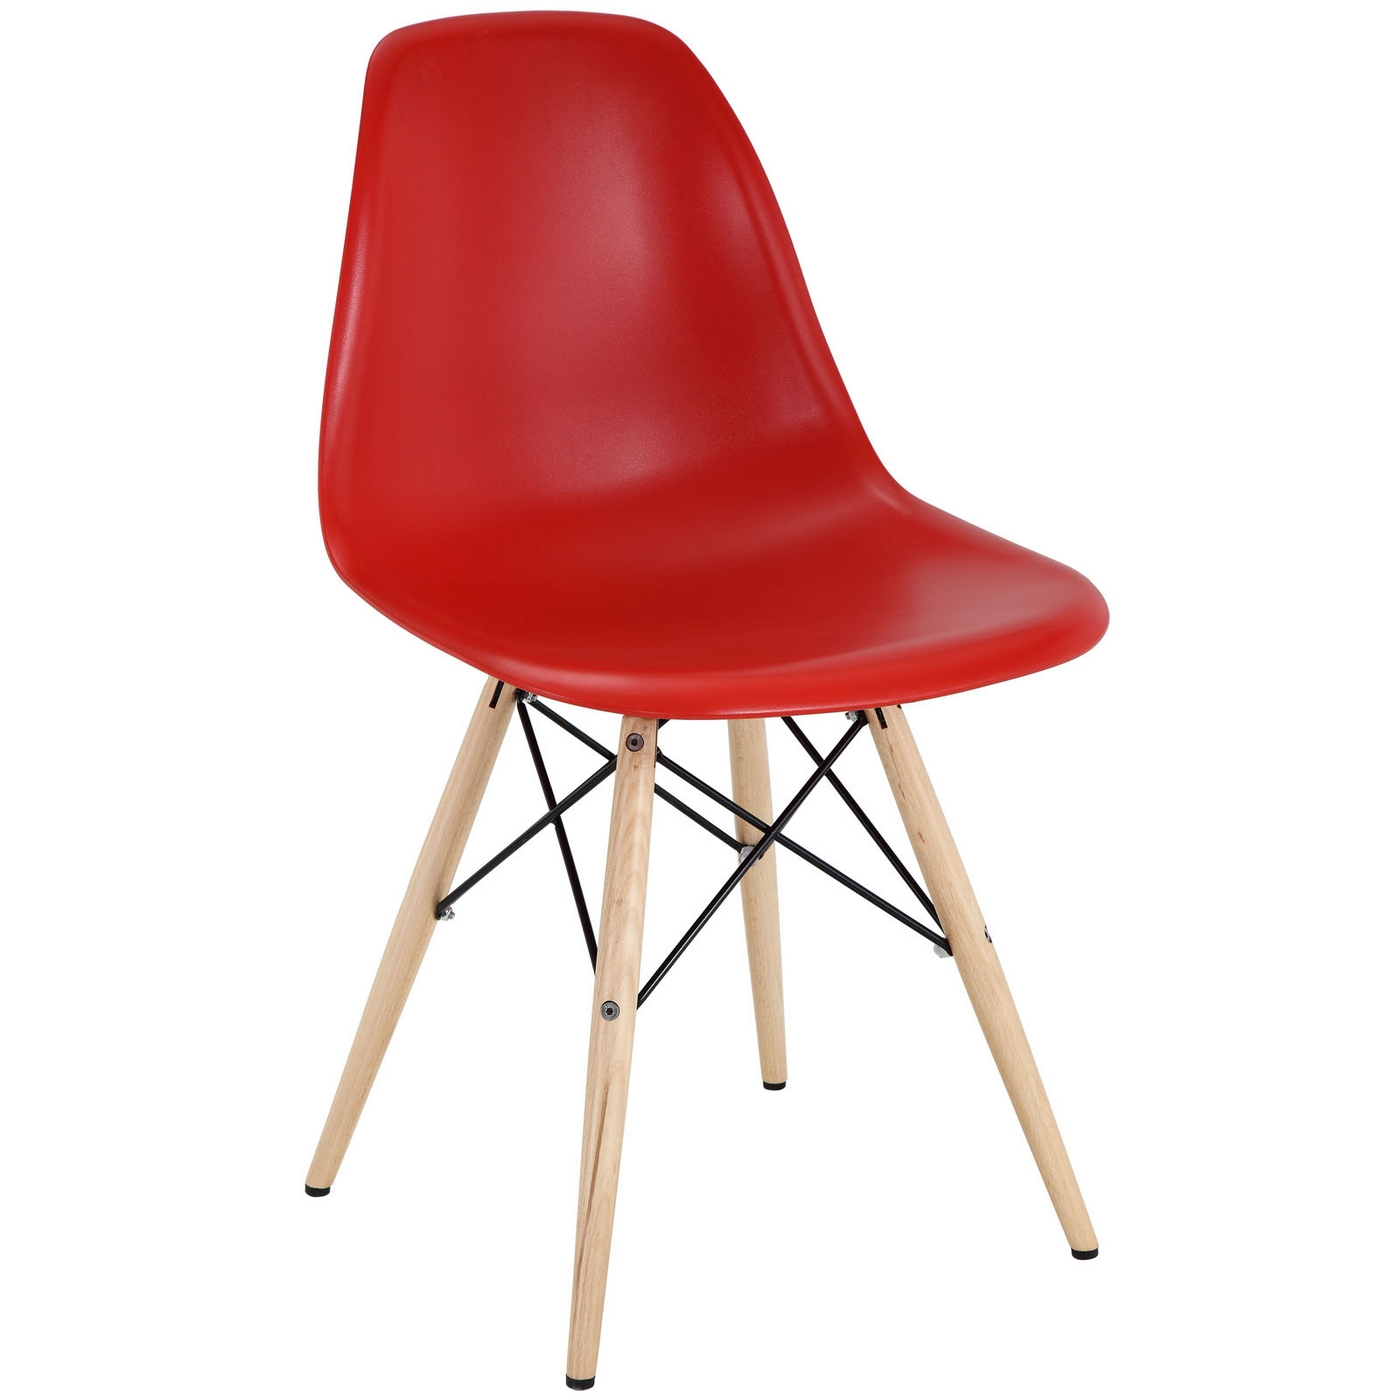 pyramid modern plastic side chair with wood legs steel accents red. Black Bedroom Furniture Sets. Home Design Ideas